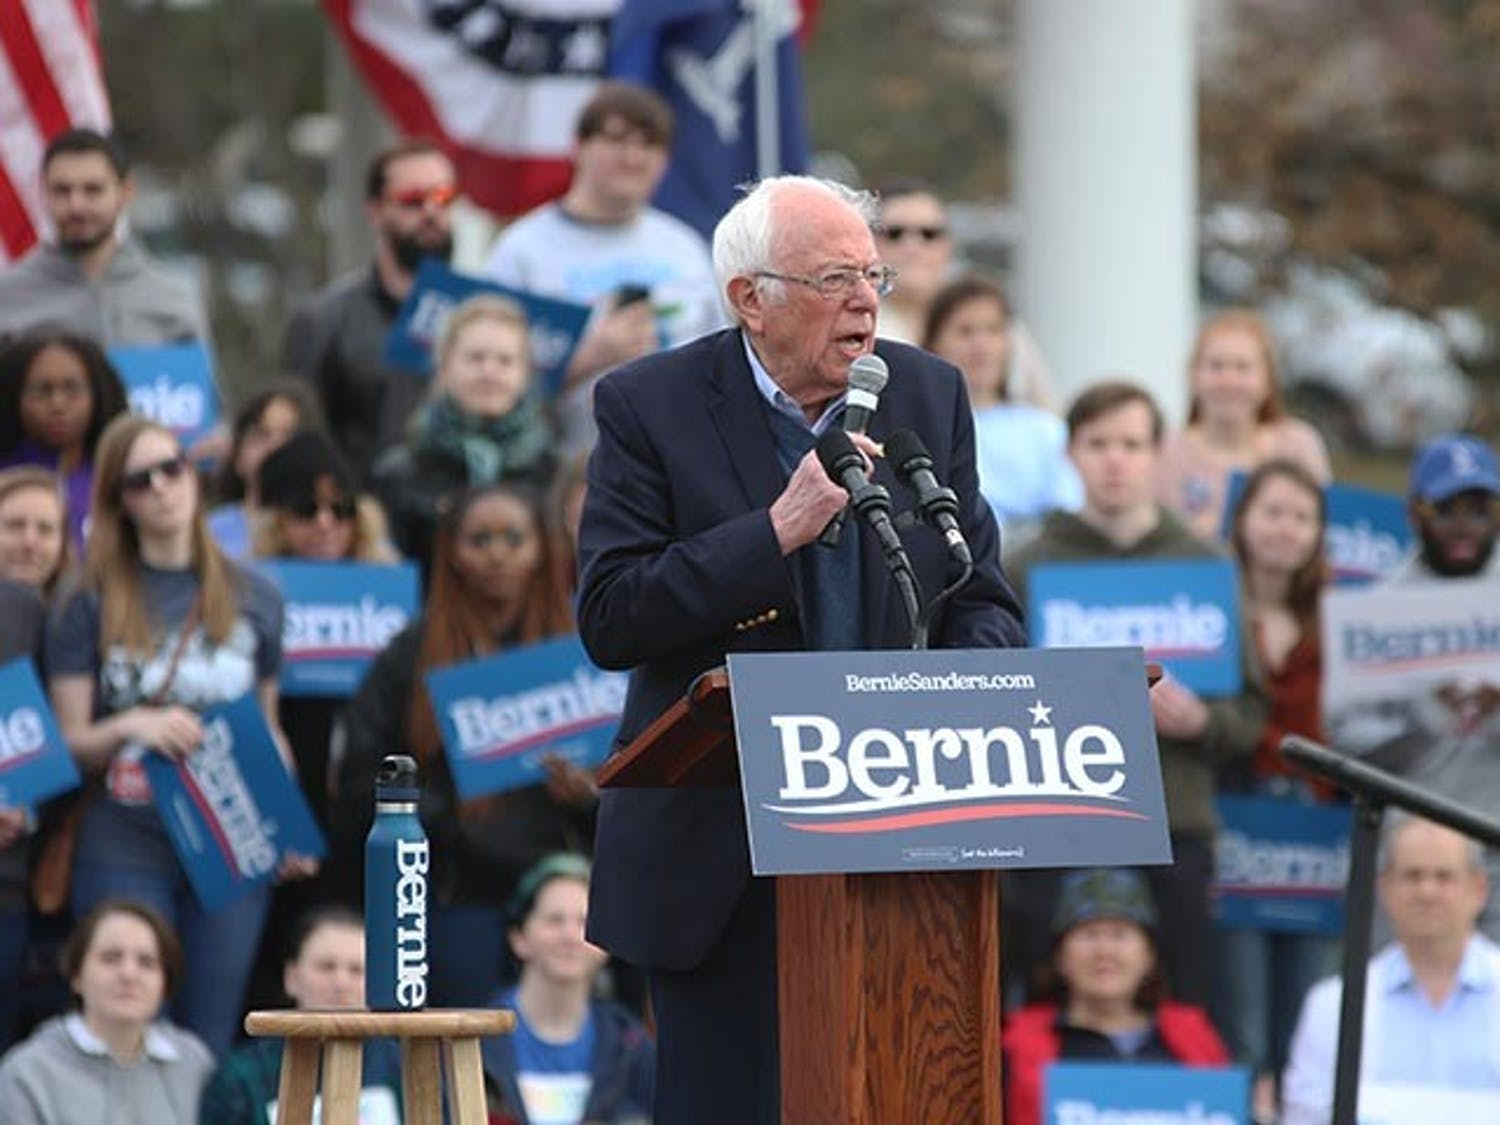 Vermont sen. and Democratic nominee candidate Bernie Sanders speaks to supporters at Friday's Bernie 2020 South Carolina rally in Finlay Park.